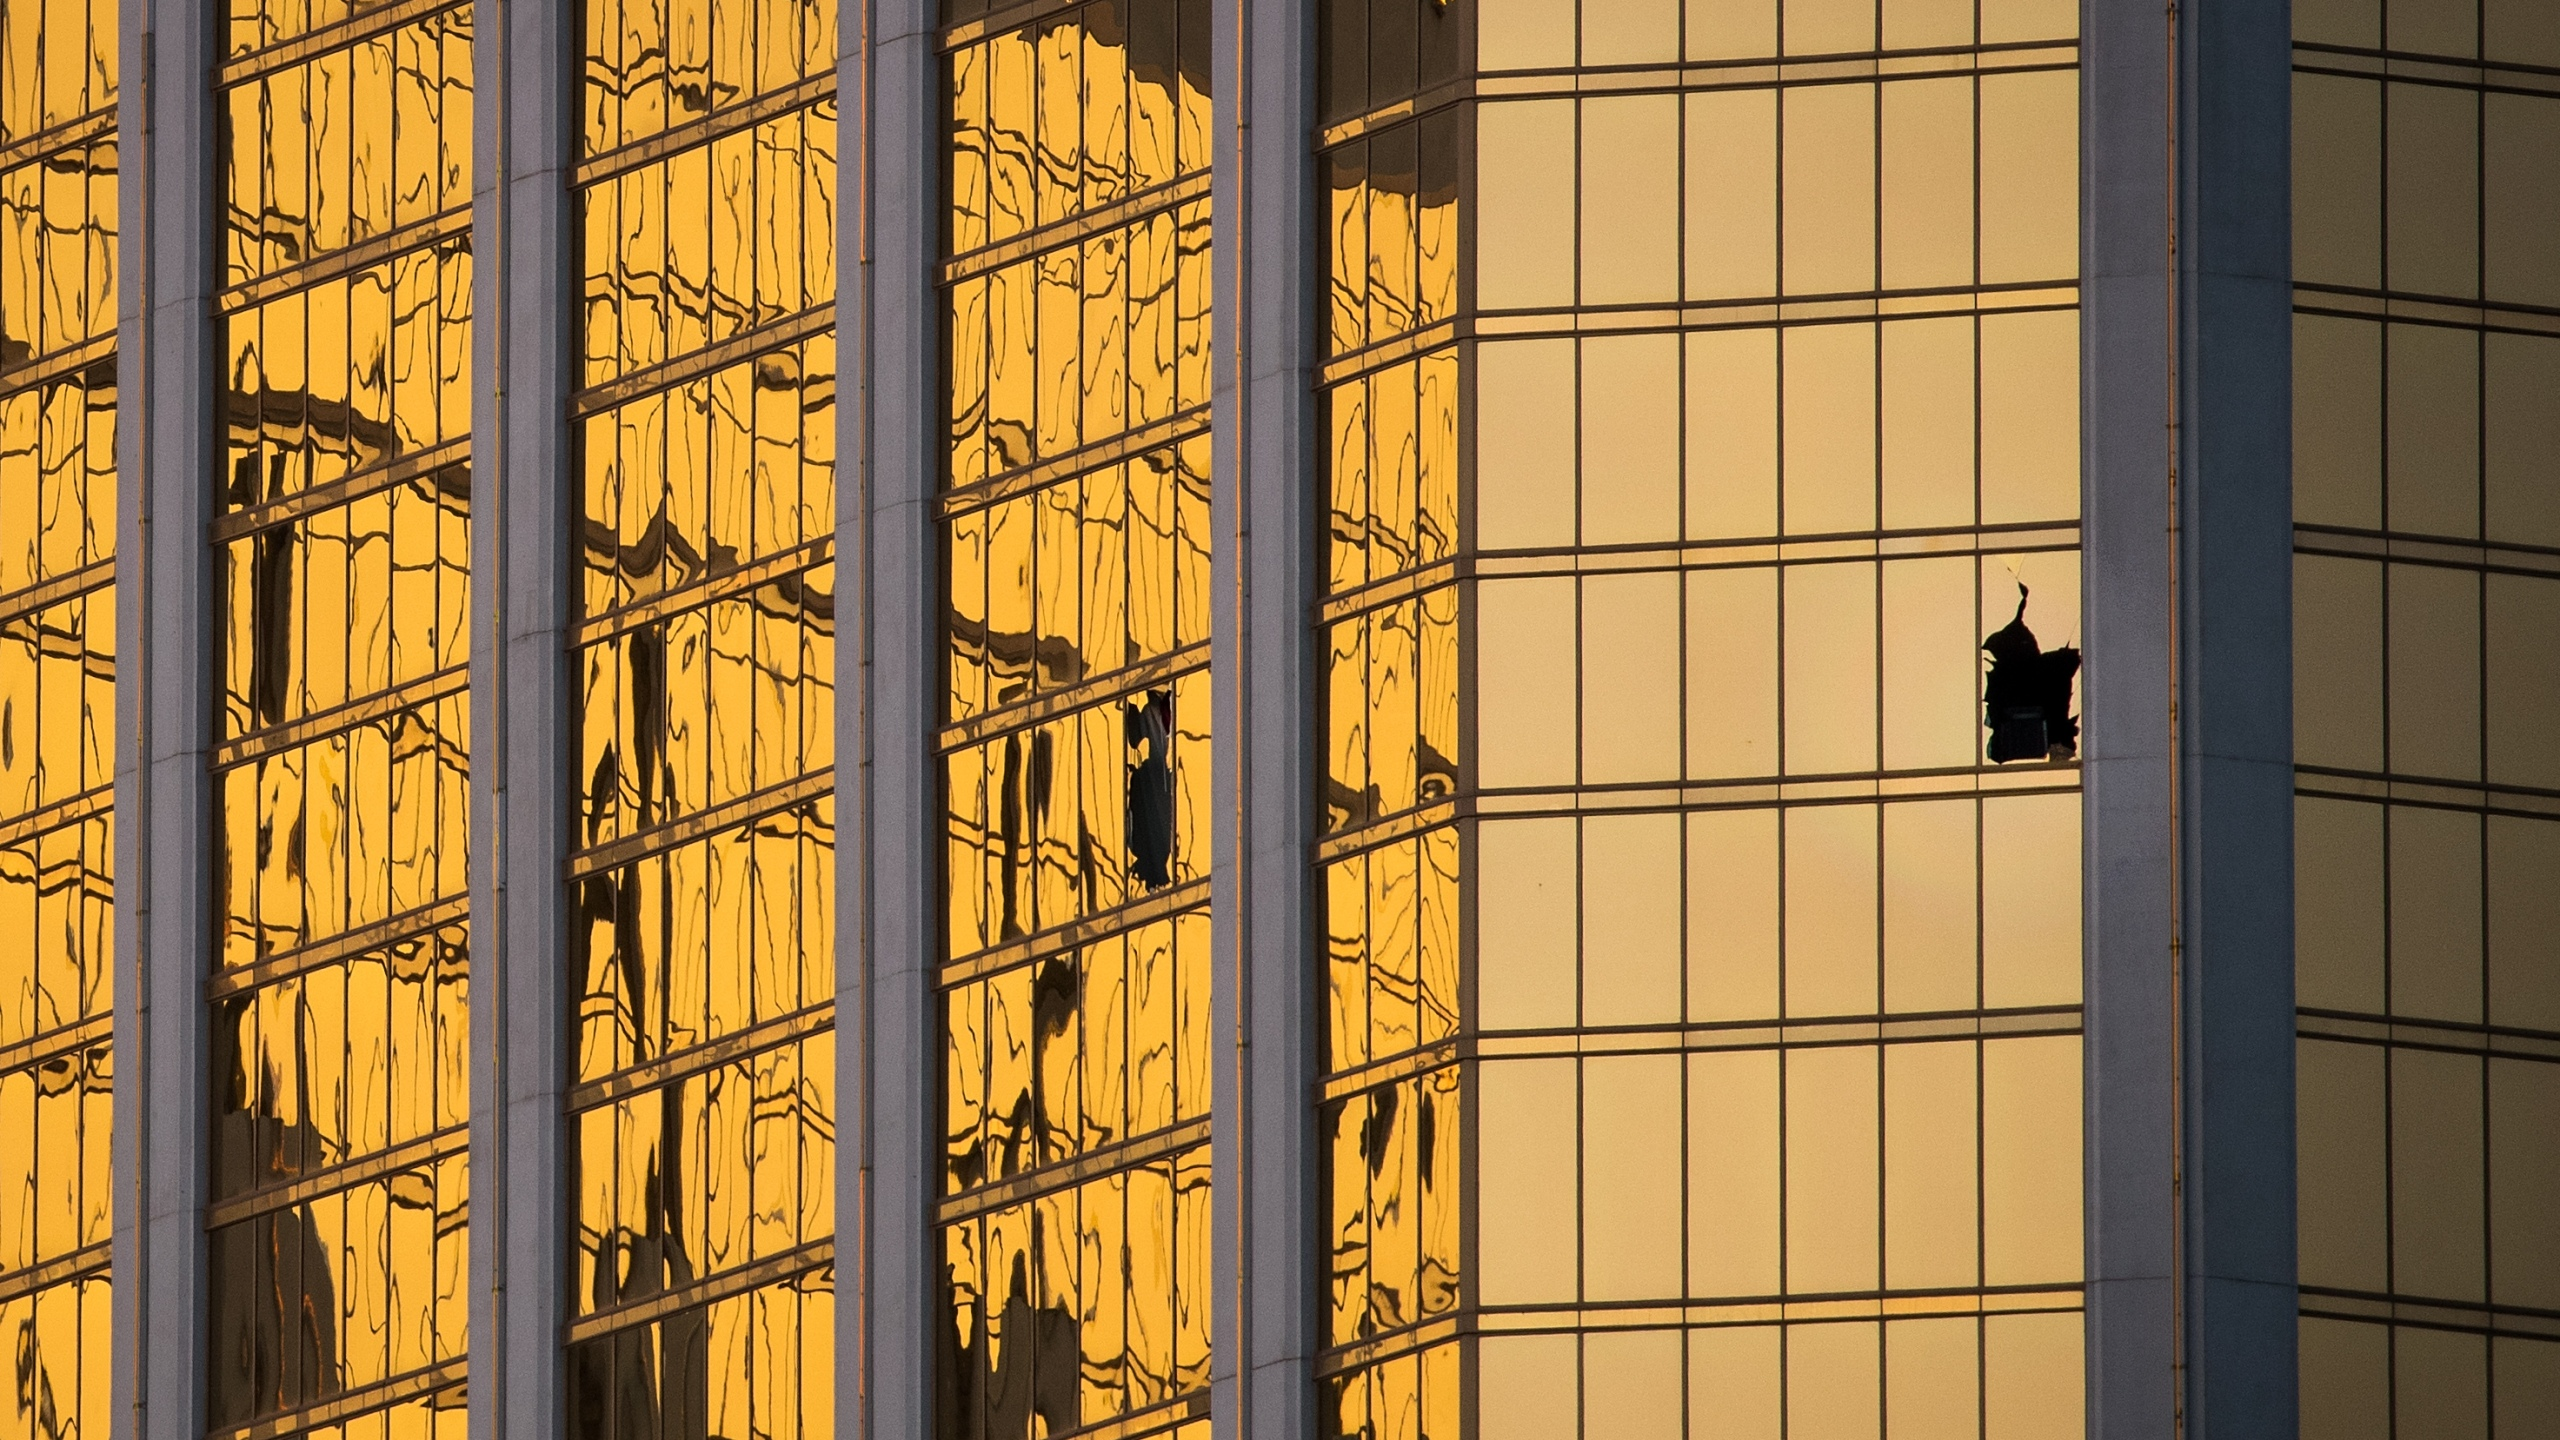 A window is broken on the 32nd floor of the Mandalay Bay Resort and Casino where a gunman opened fire on a concert crowd on Sunday night, October 3, 2017 in Las Vegas, Nevada. (Credit: Drew Angerer/Getty Images)